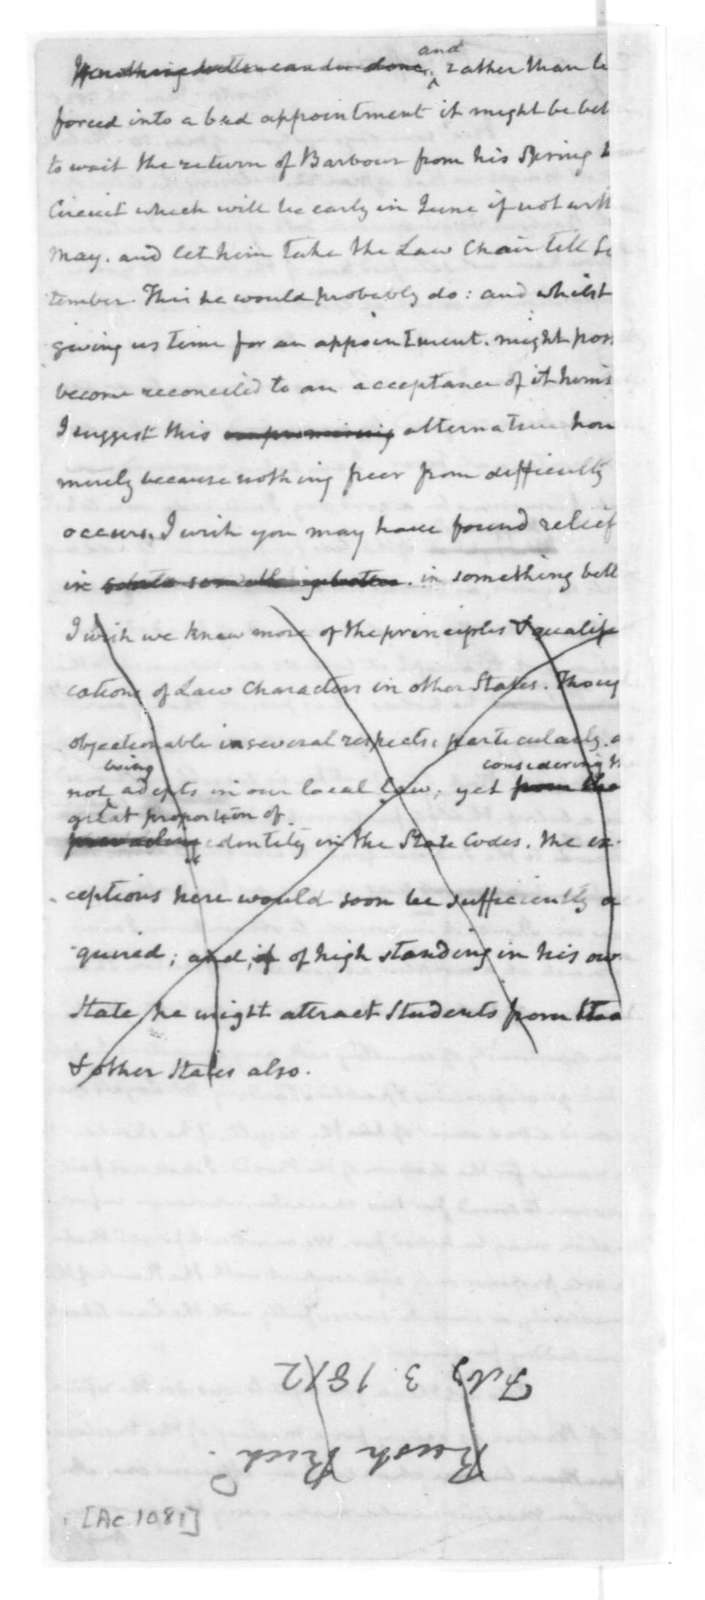 James Madison to Thomas Jefferson, March 26, 1825. With Copy.